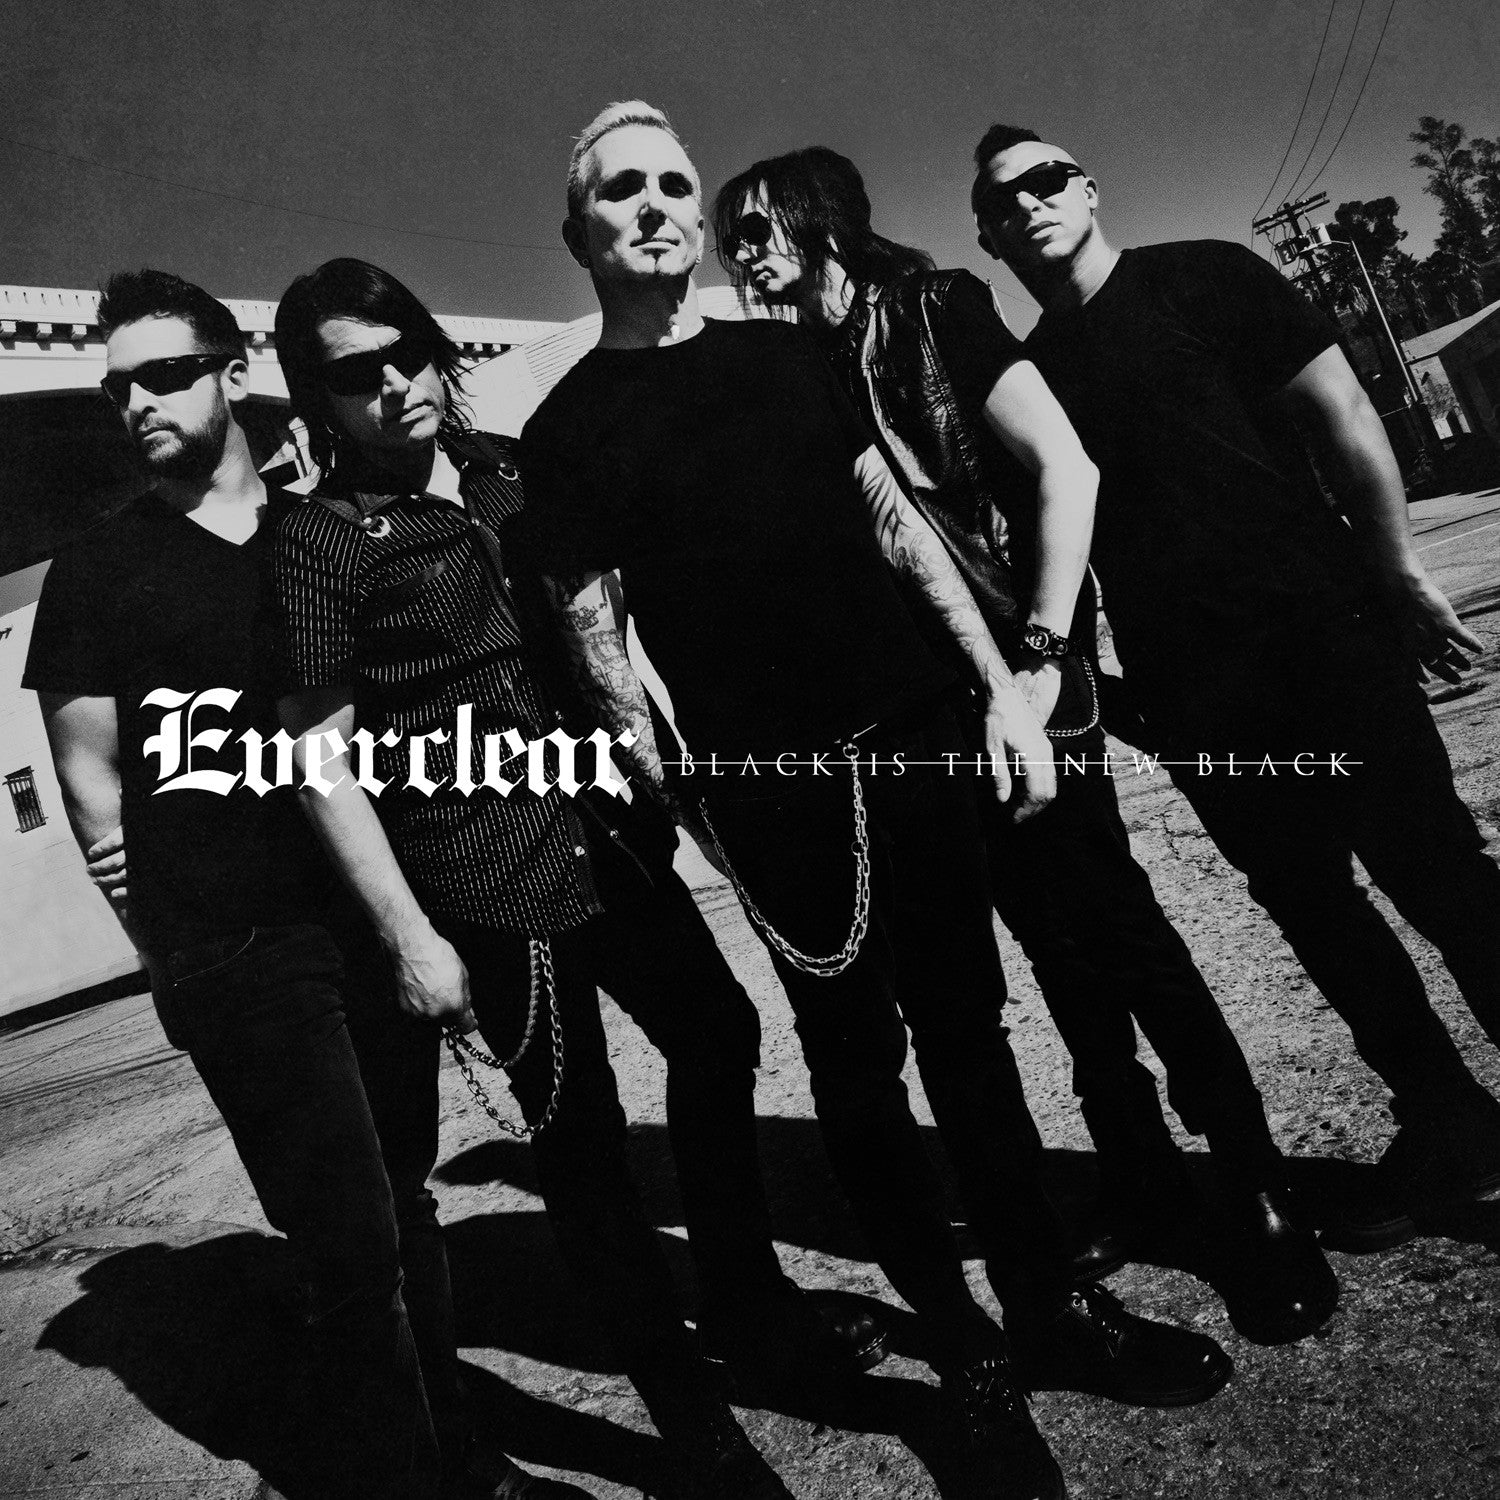 EVERCLEAR/BLACK IS THE NEW BLACK LP